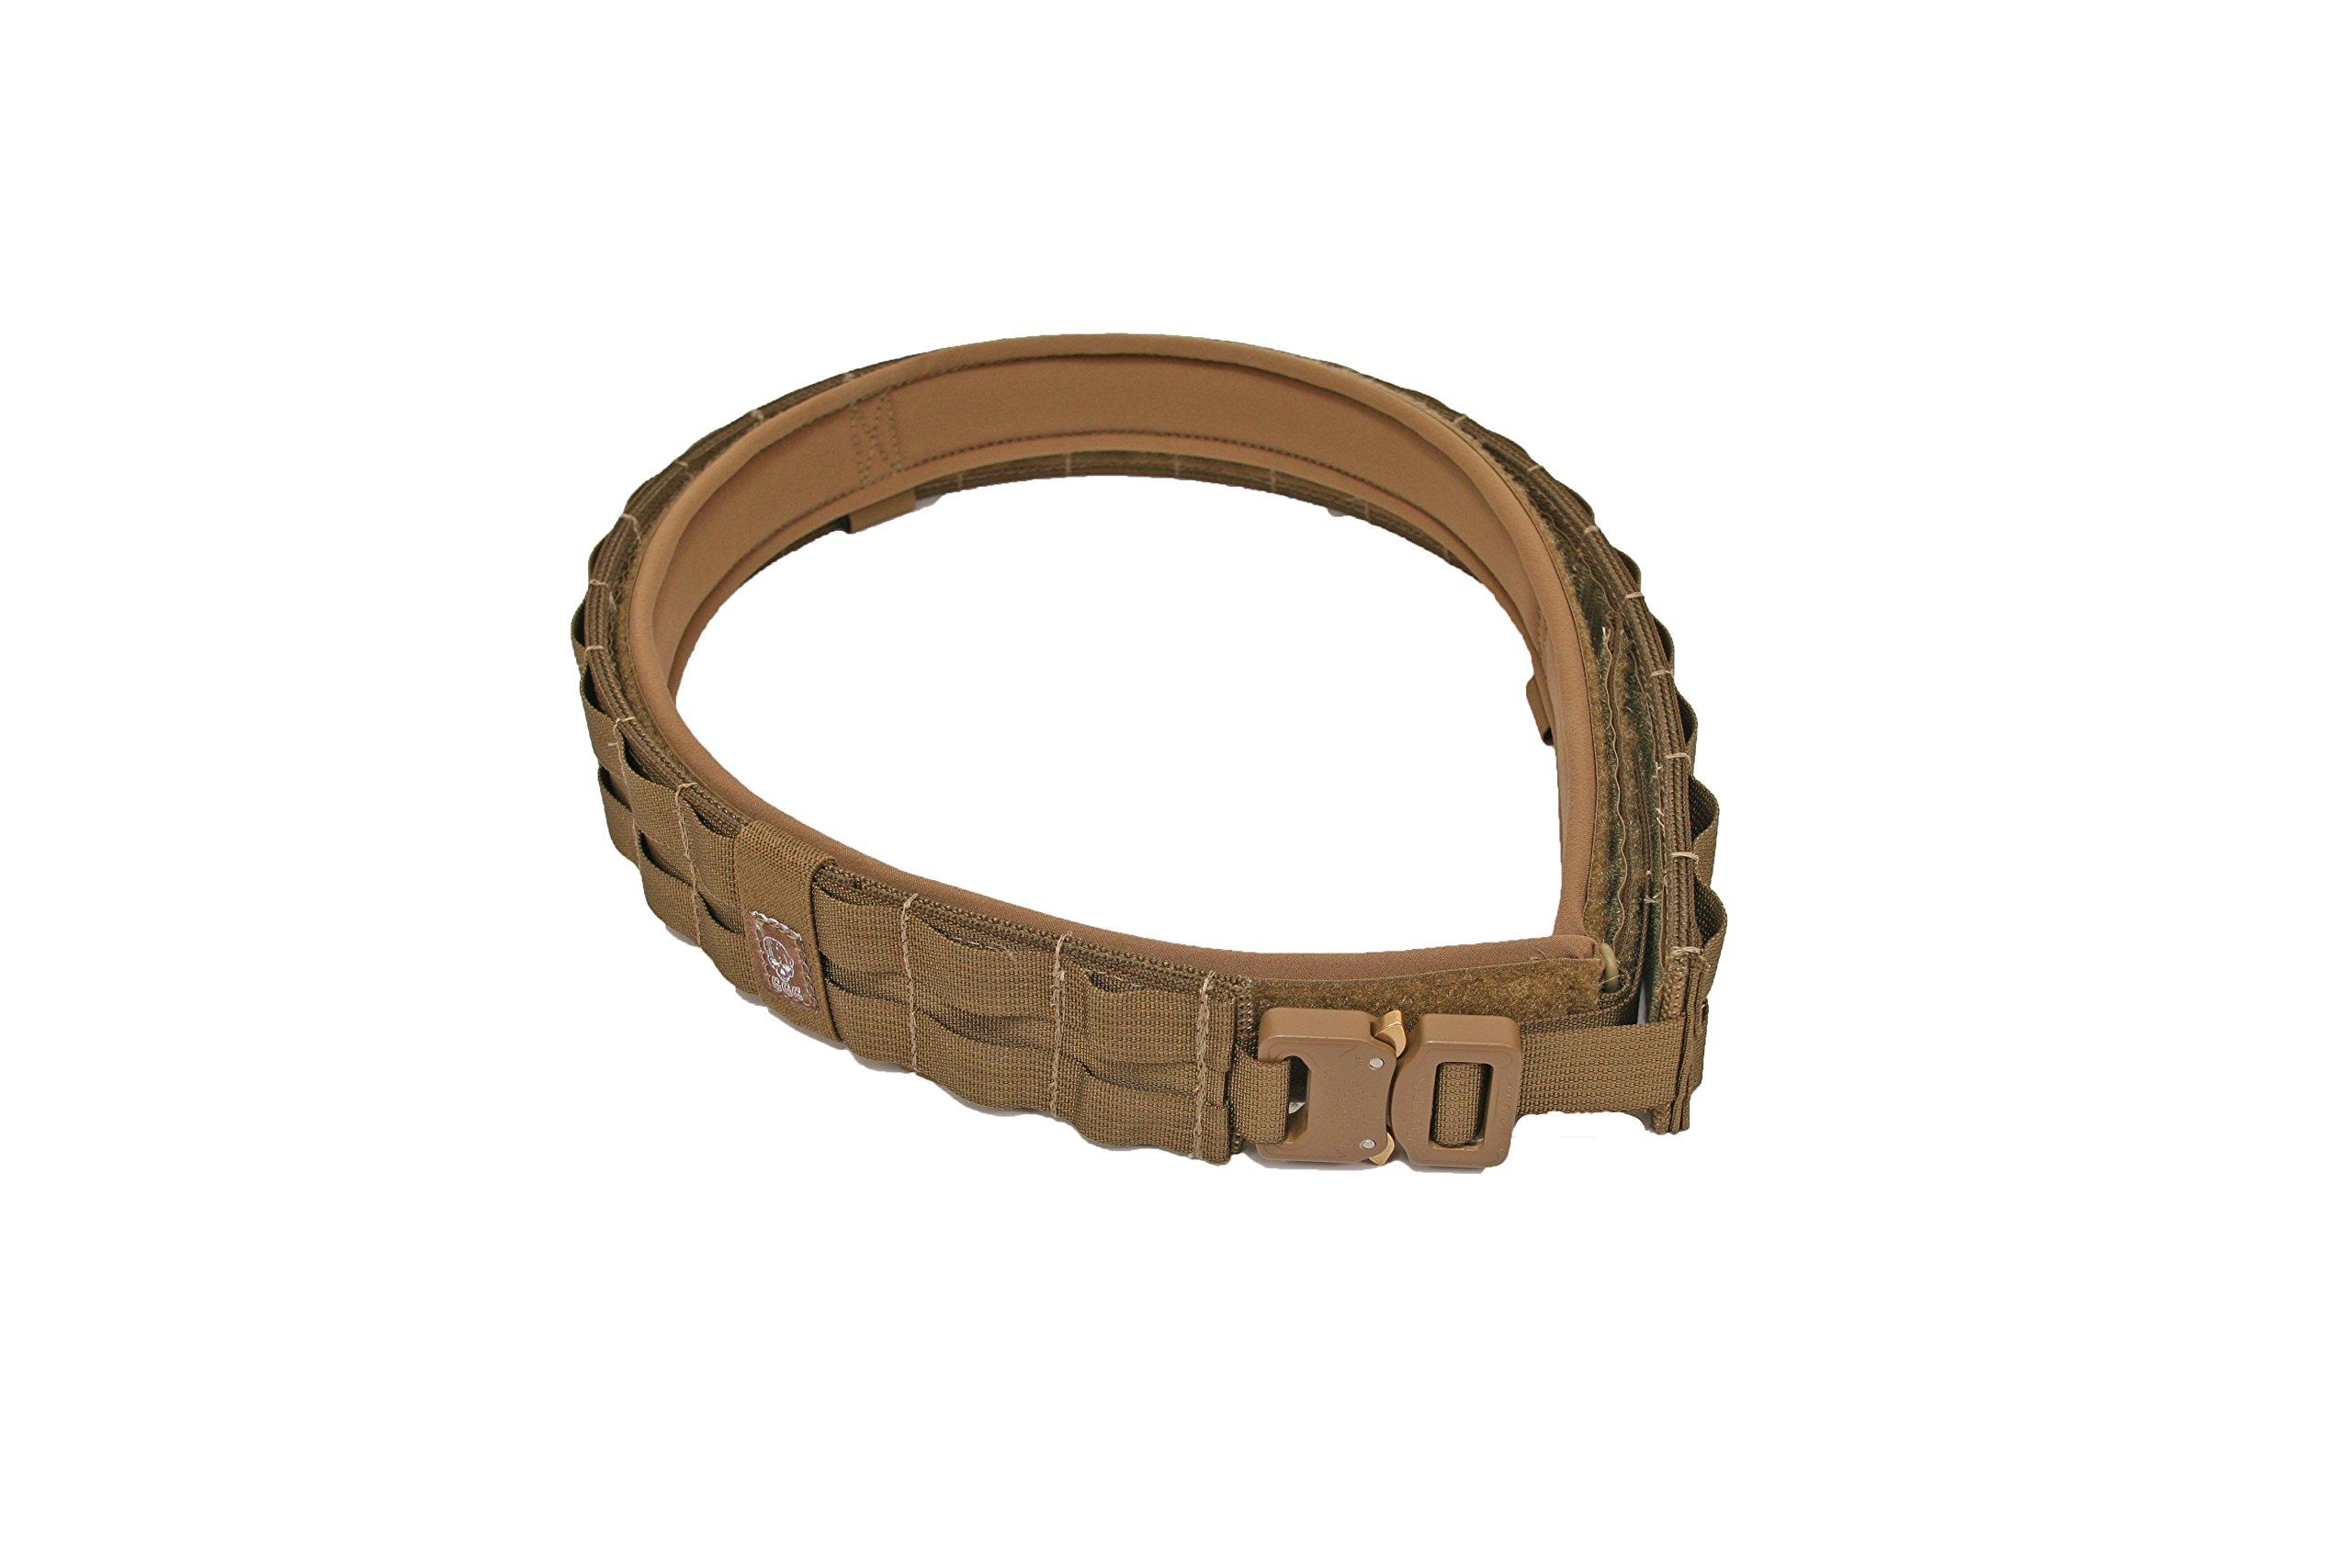 Grey Ghost Gear 7014-14 UGF Battle Belt with Padded Inner, Coyote Brown, X-Large by Grey Ghost Gear (Image #1)